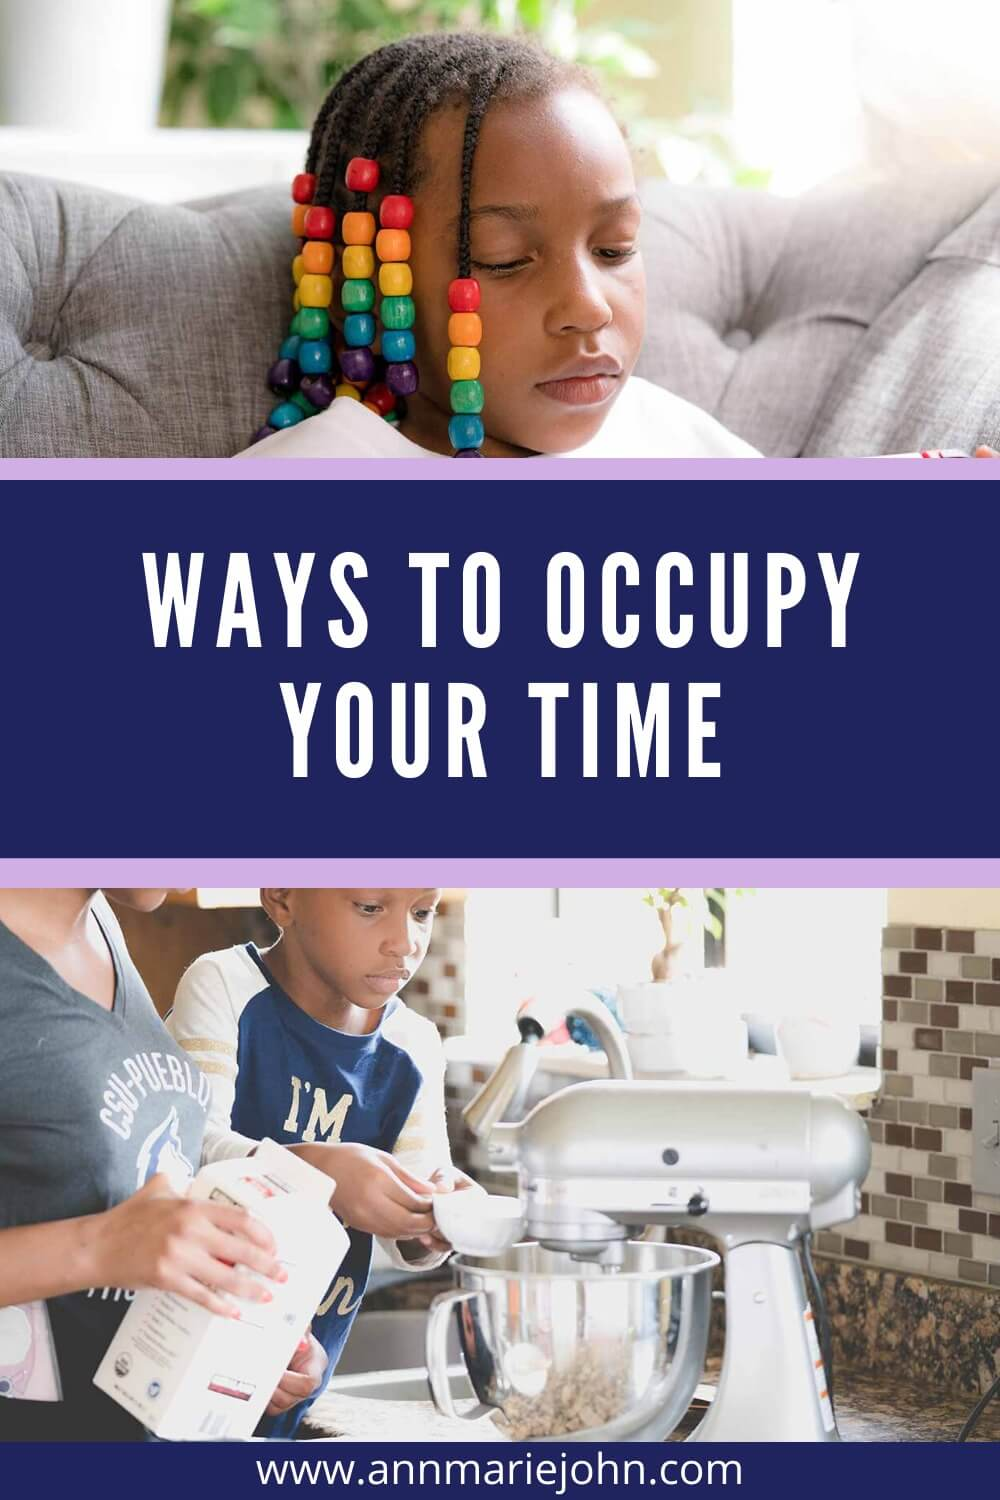 Ways to Occupy Your Time